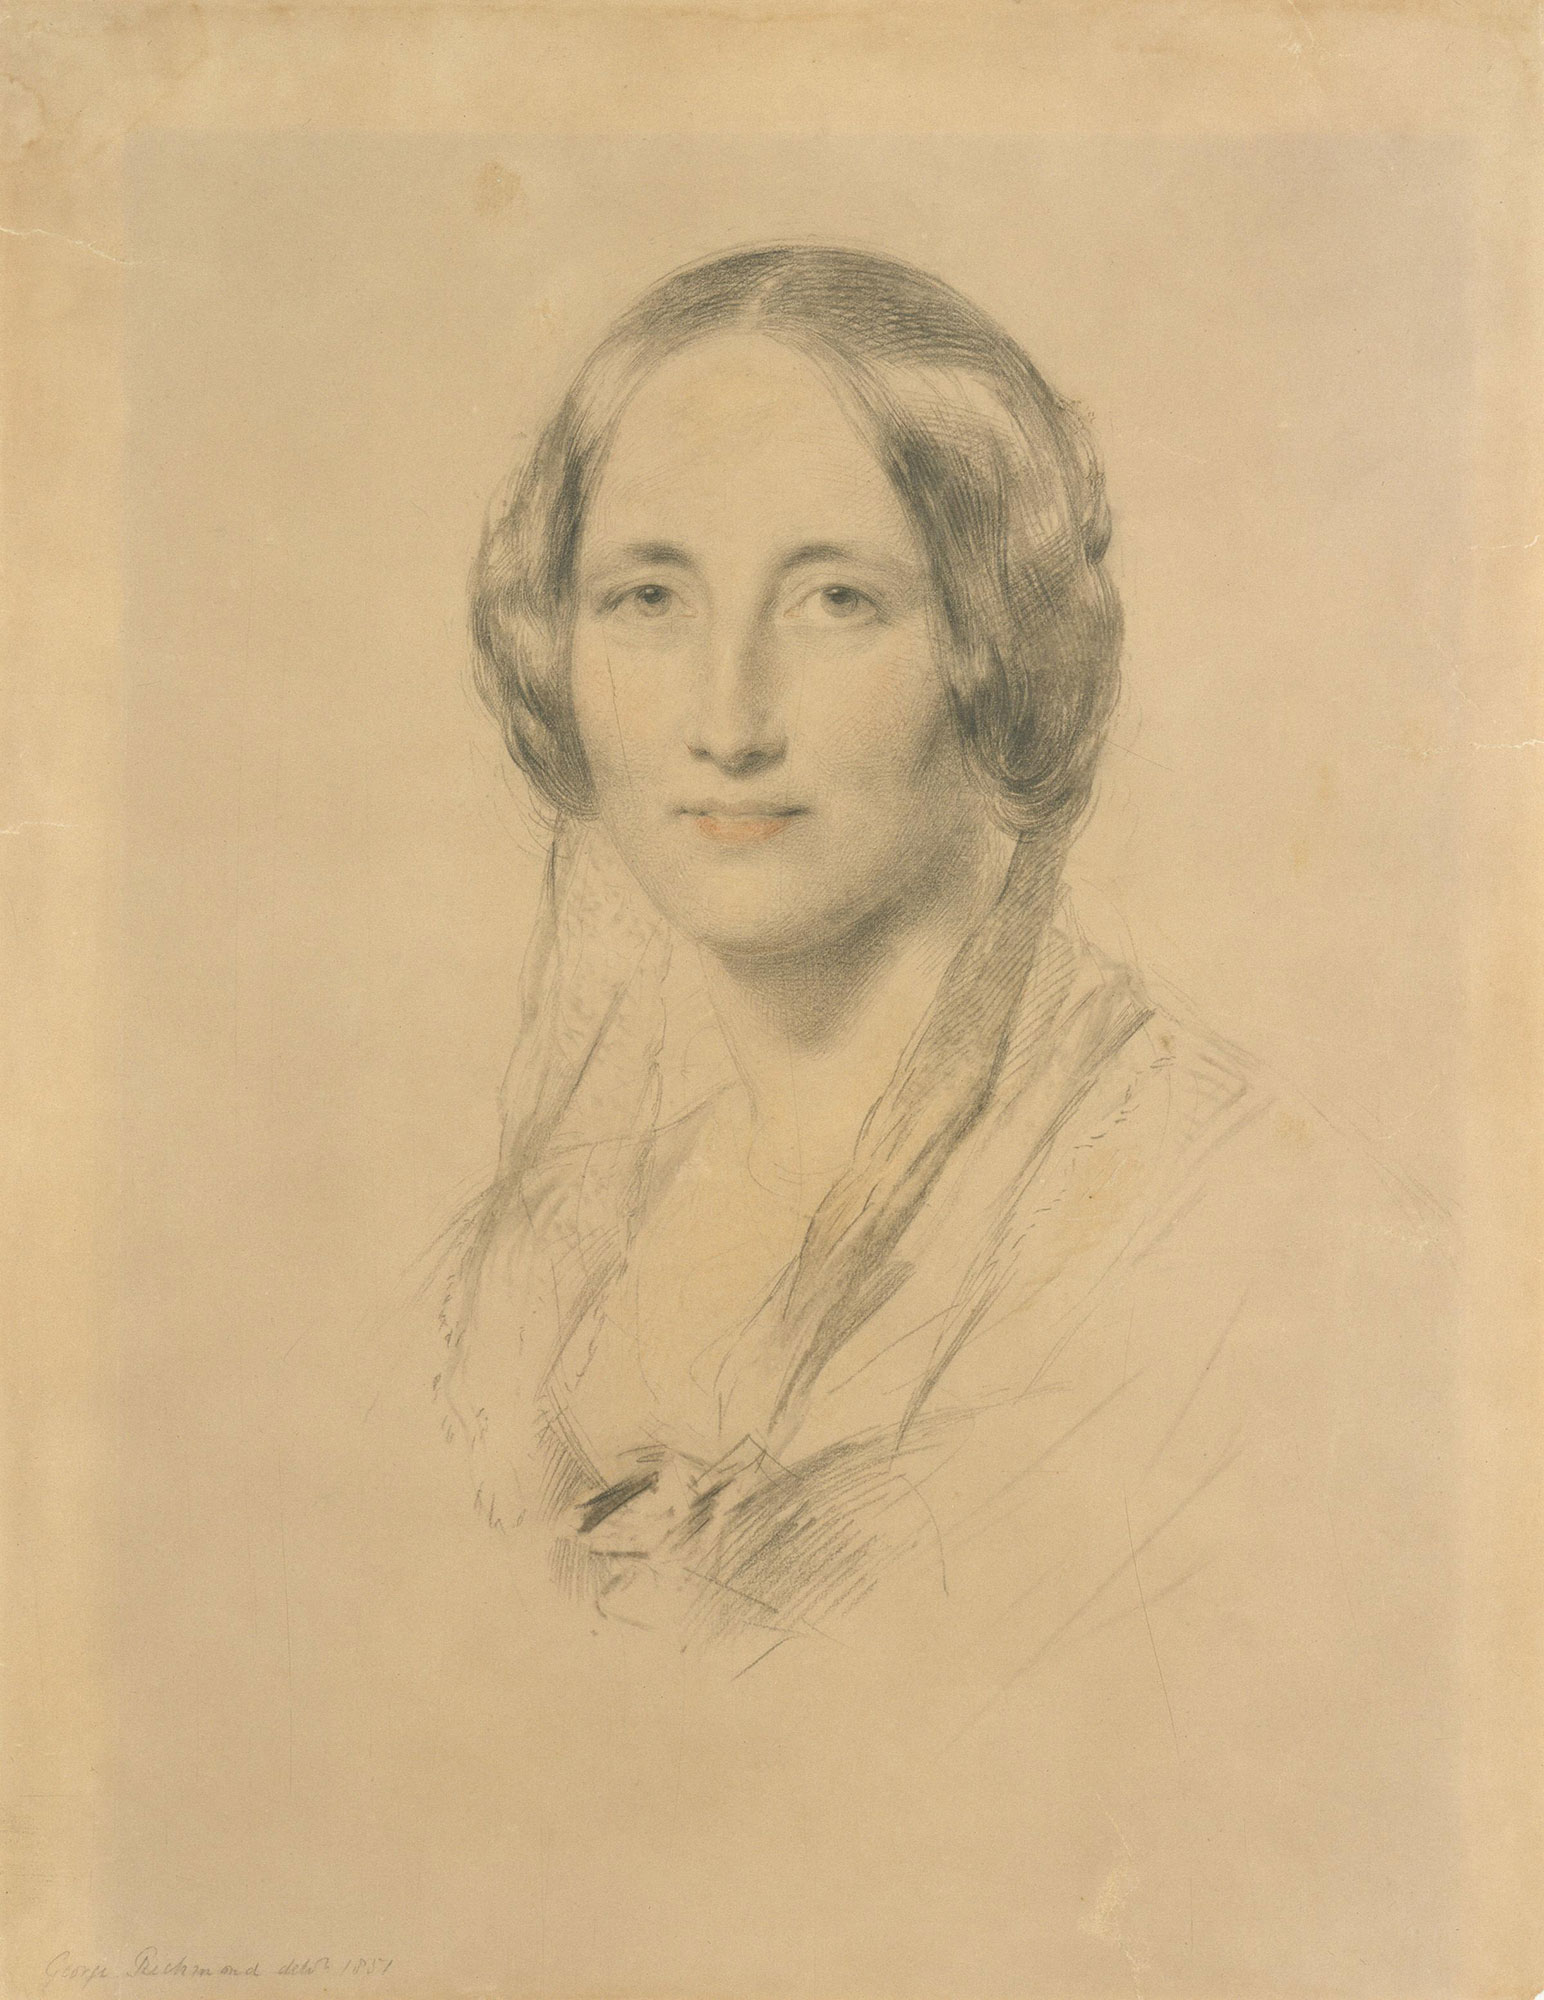 Elizabeth Cleghorn Gaskell, author of Cranford and North and South. Portrait by George Richmond © National Portrait Gallery, London.